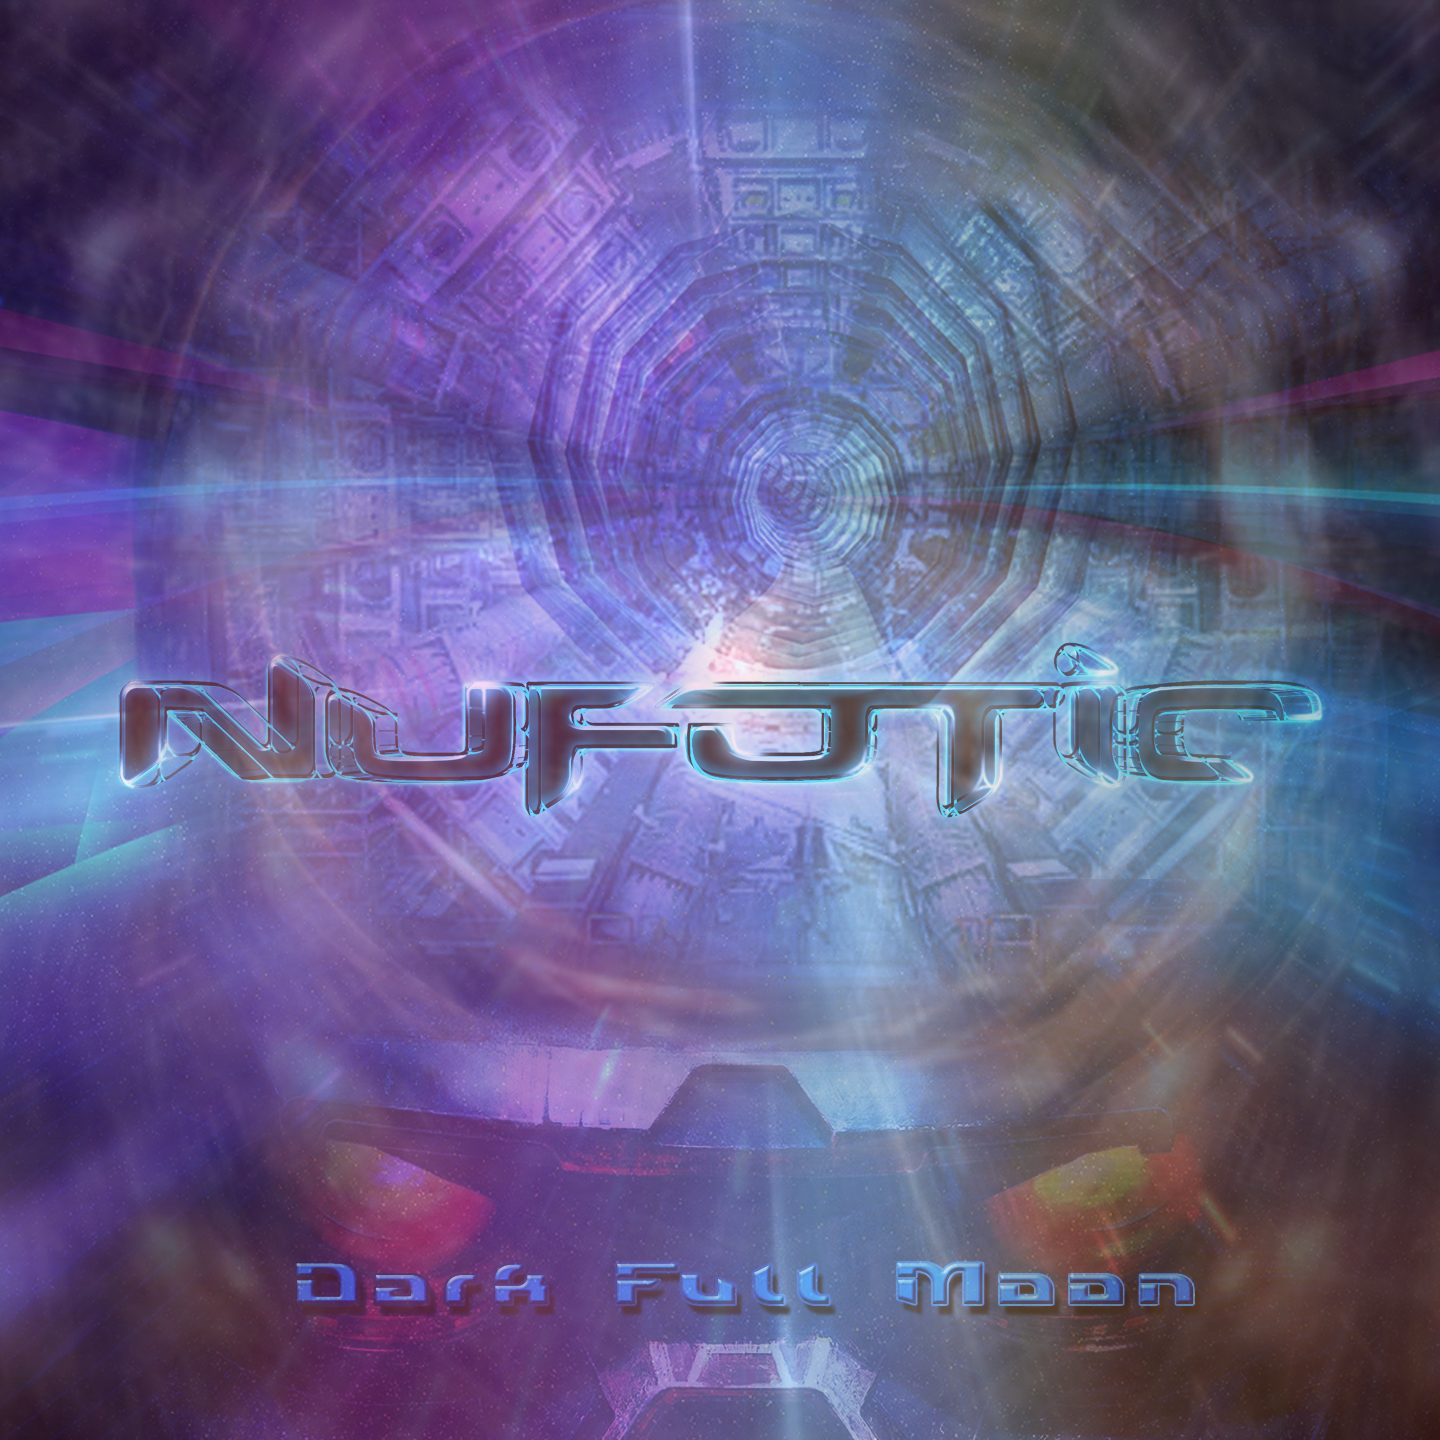 Nufutic - Dark Full Moon